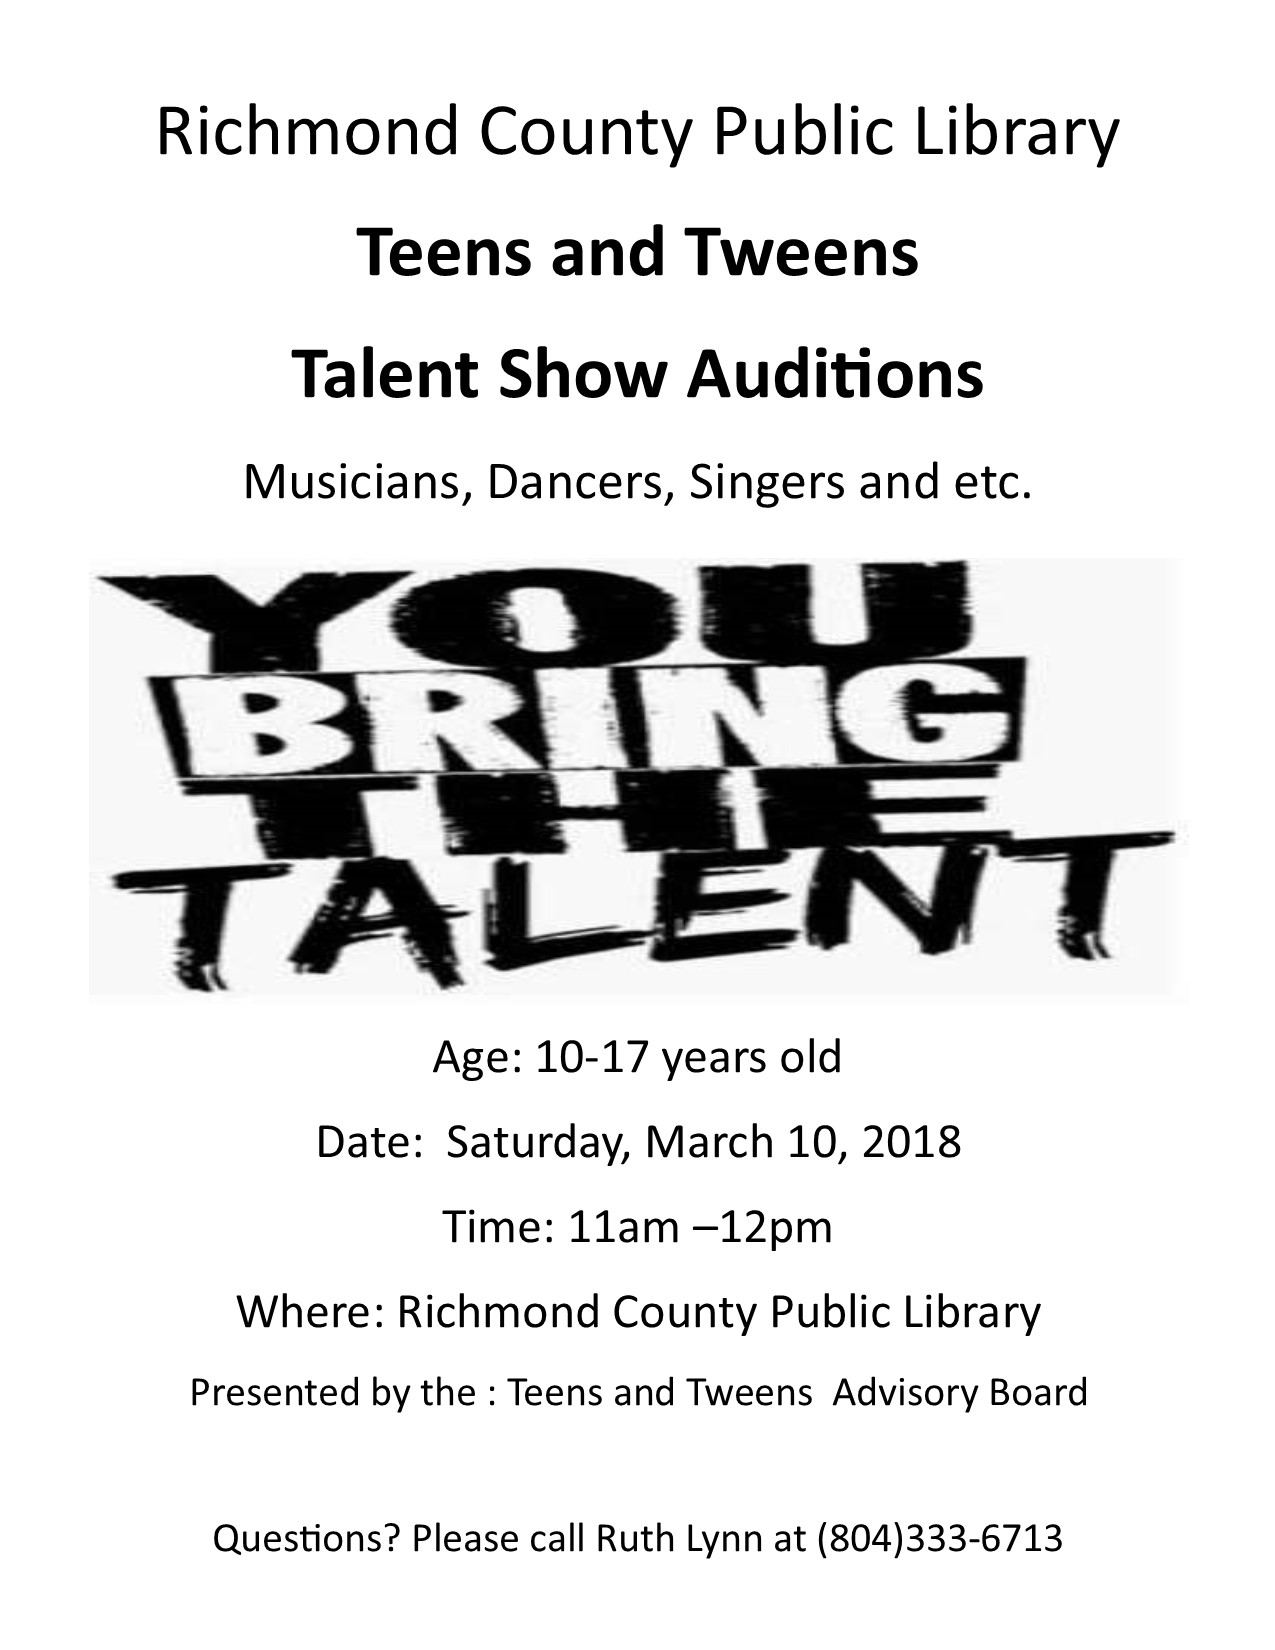 Teens and Tweens Talent Show Auditions